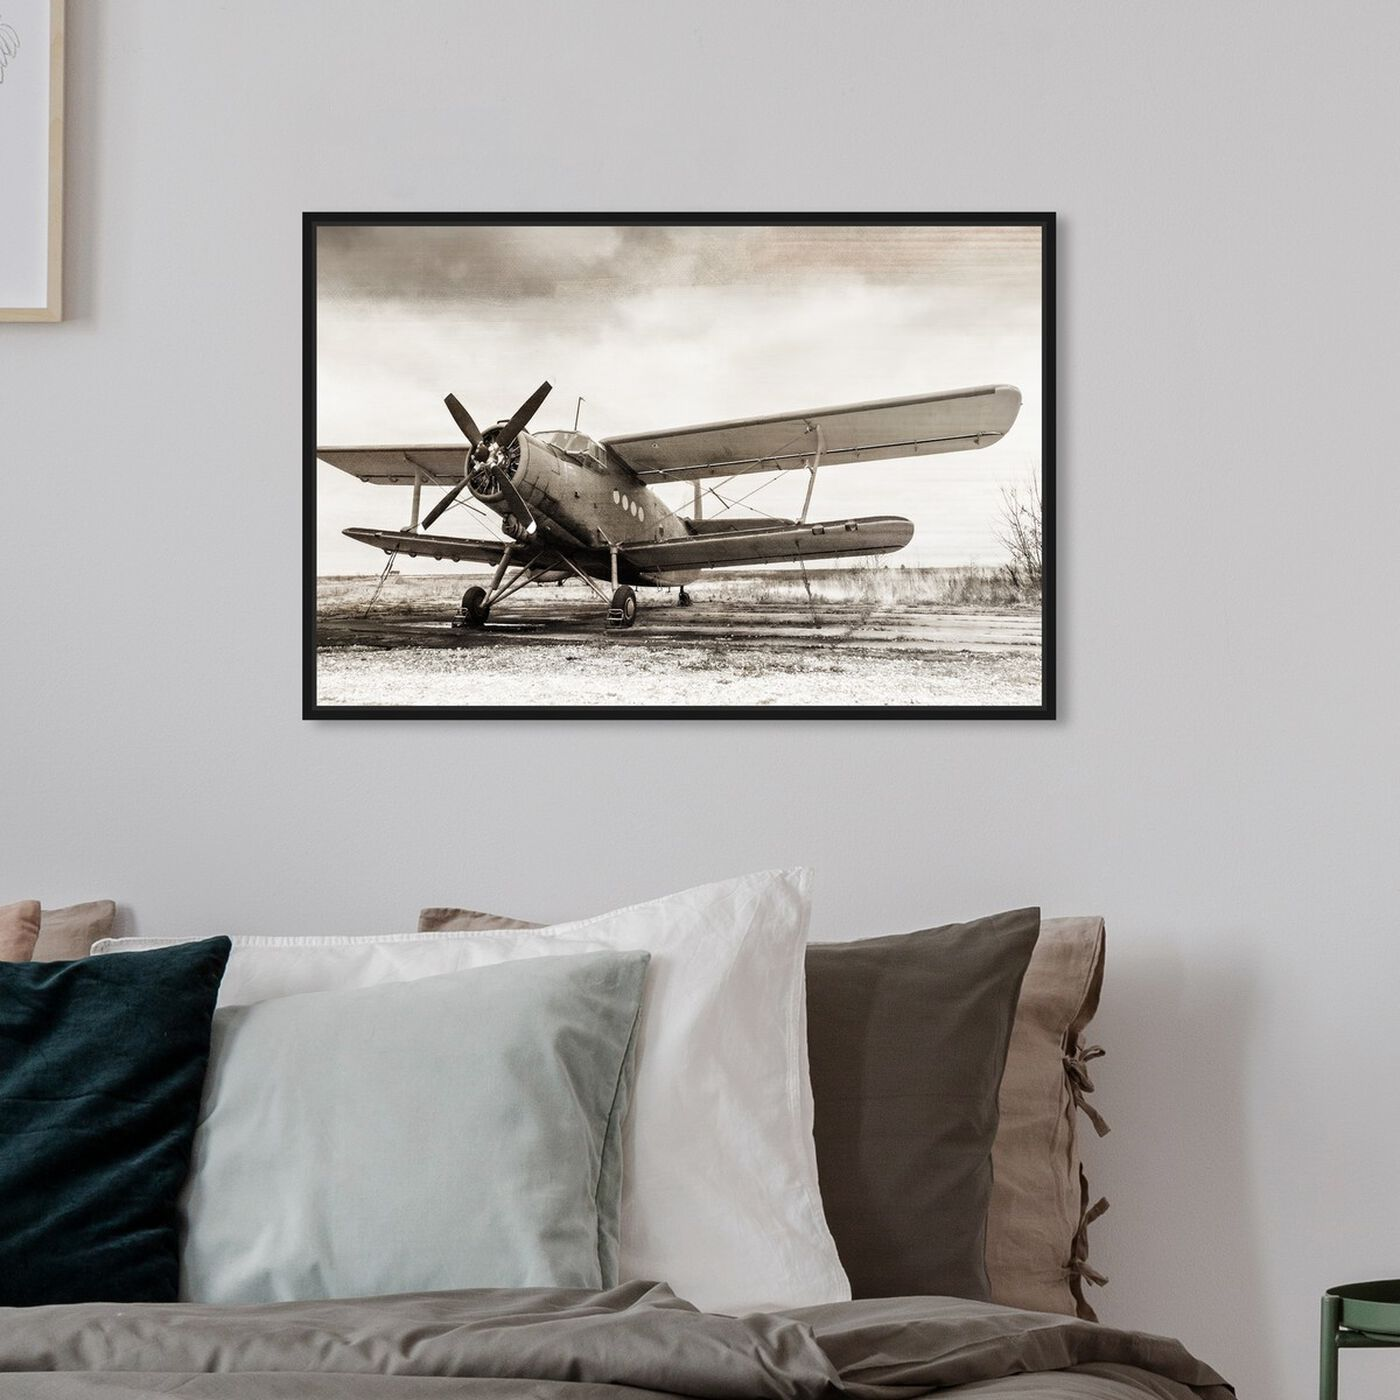 Hanging view of Helix Airplane featuring transportation and airplanes art.